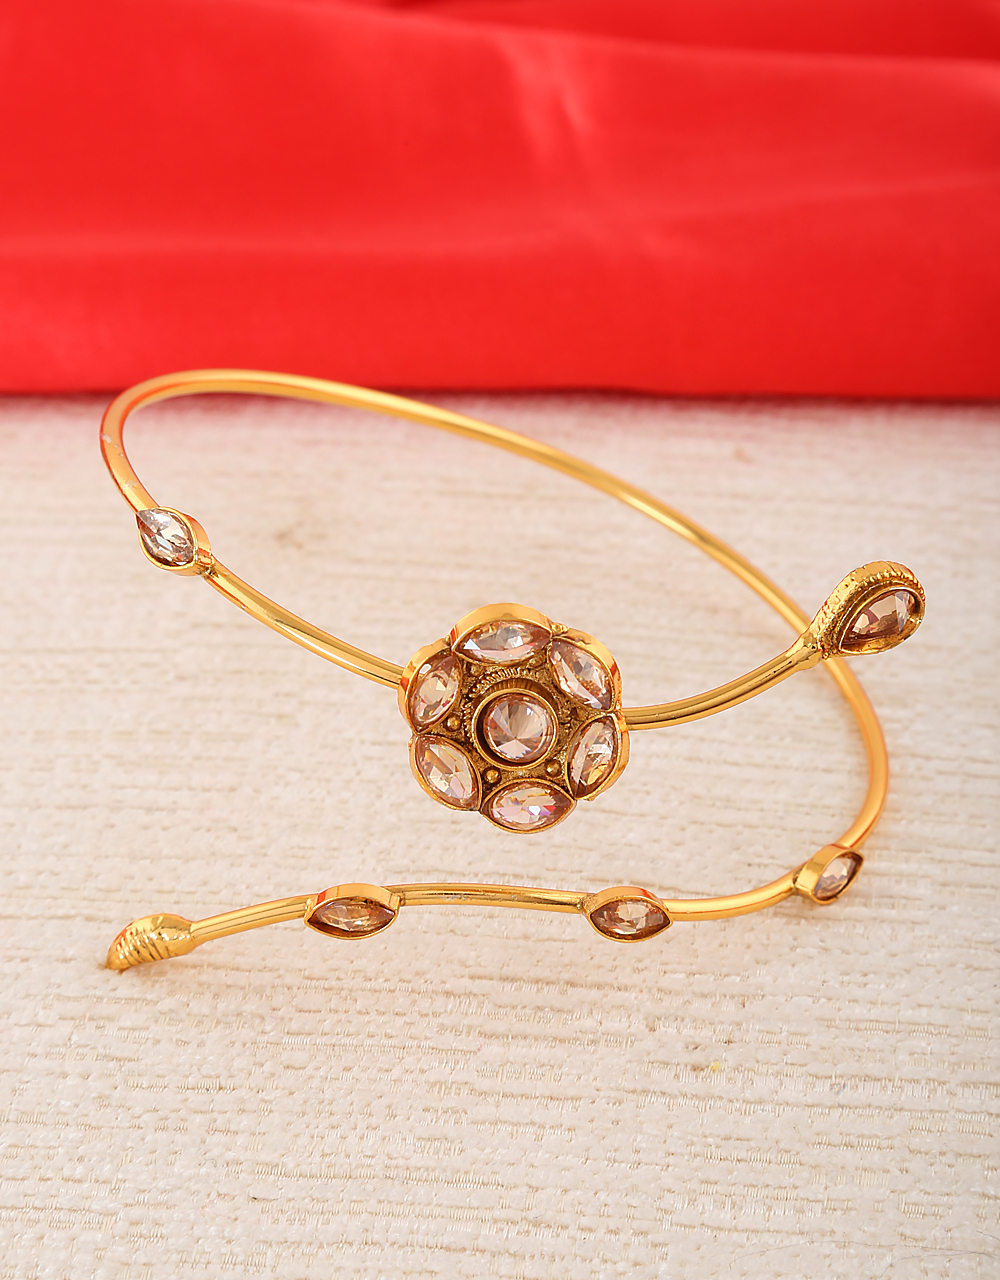 Gold Finish Adorable Bajuband Styled With Stones Golden Armlet